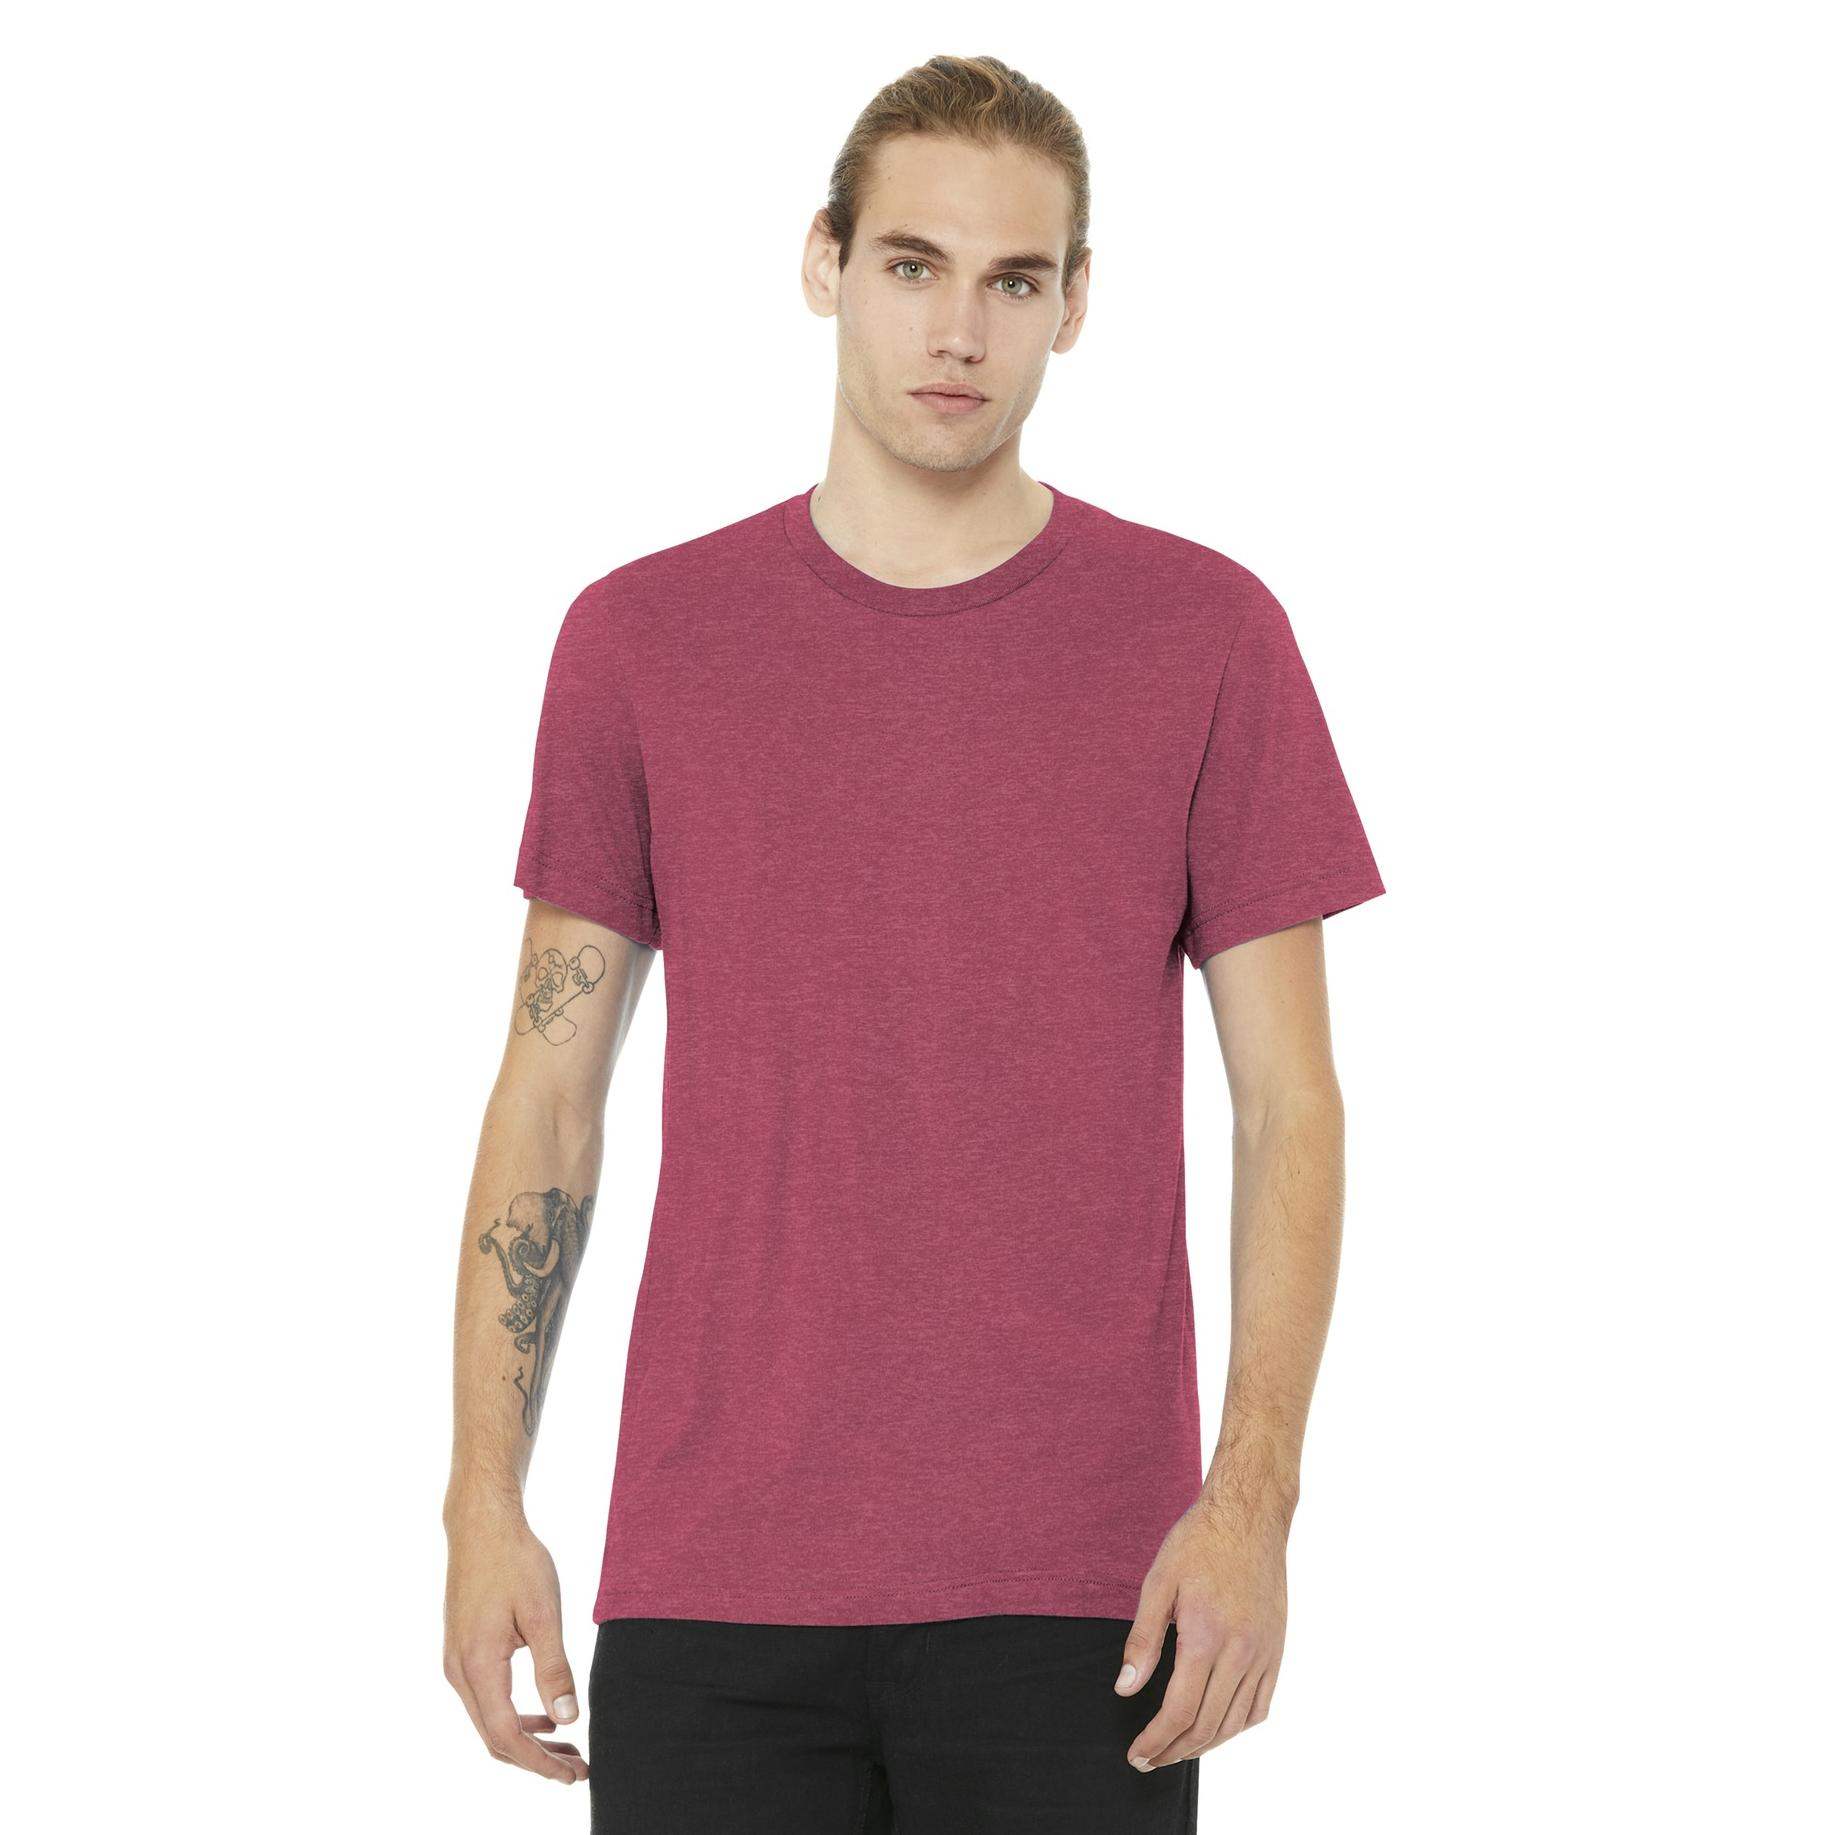 9abb52d46a511 Bella + Canvas BC3001 Unisex Jersey Short Sleeve Tee - Heather Raspberry